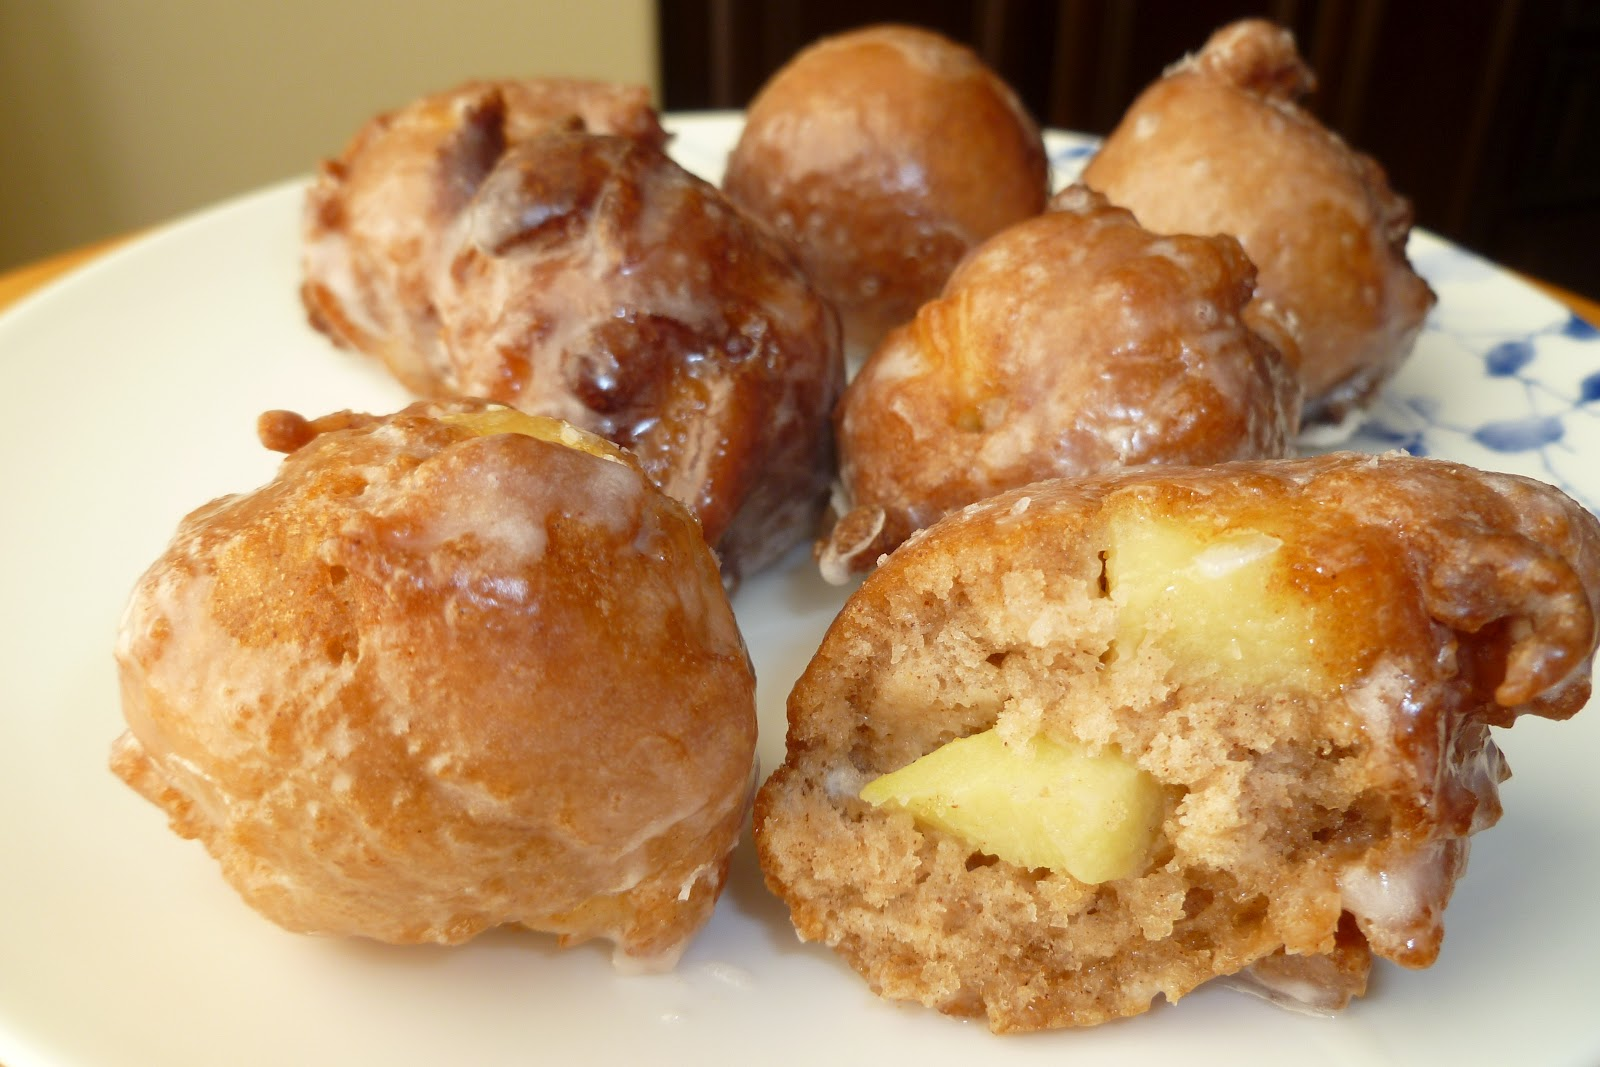 Apple Fritters - made September 22, 2012 from Seemingly Greek